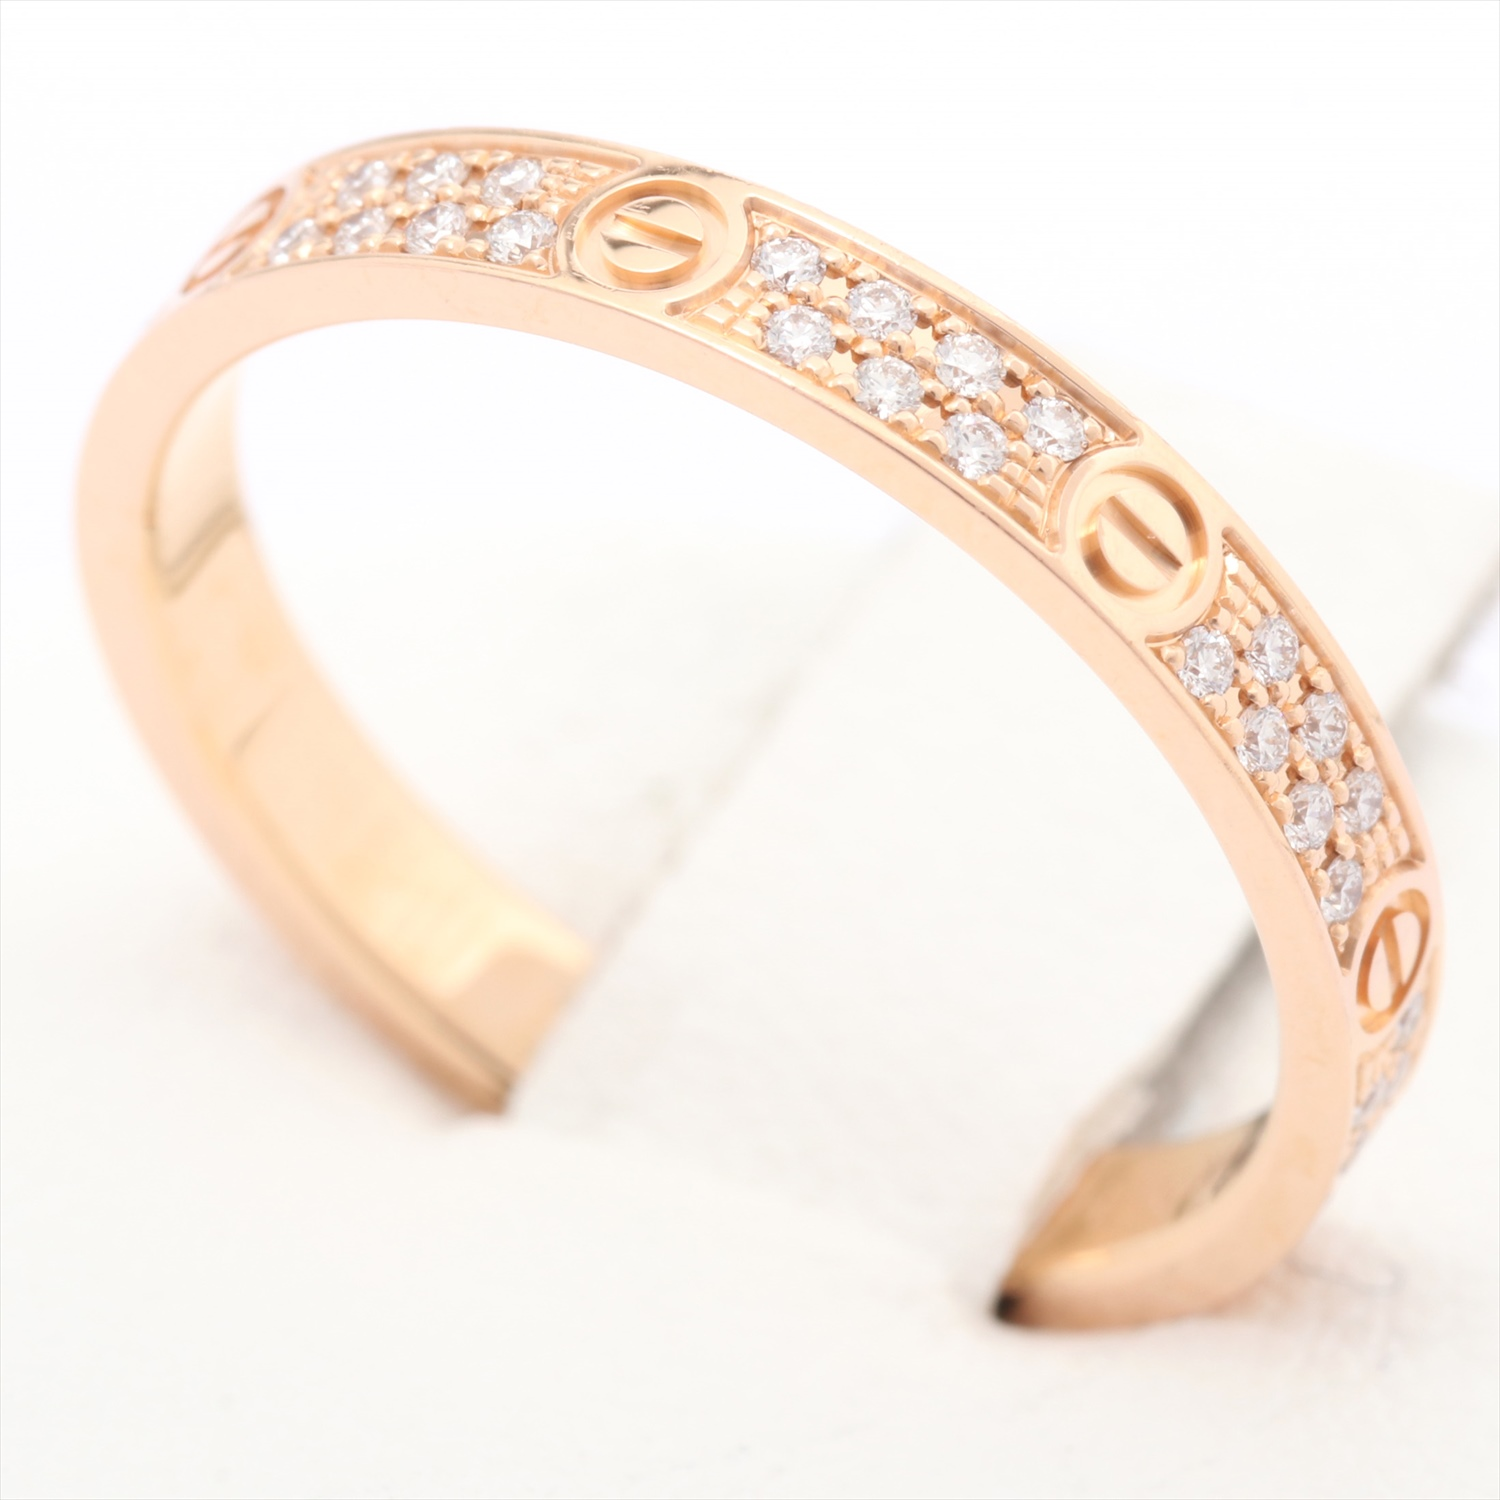 [Used article] Cartier Cartier love ring SM paved diamond 750PG # 51